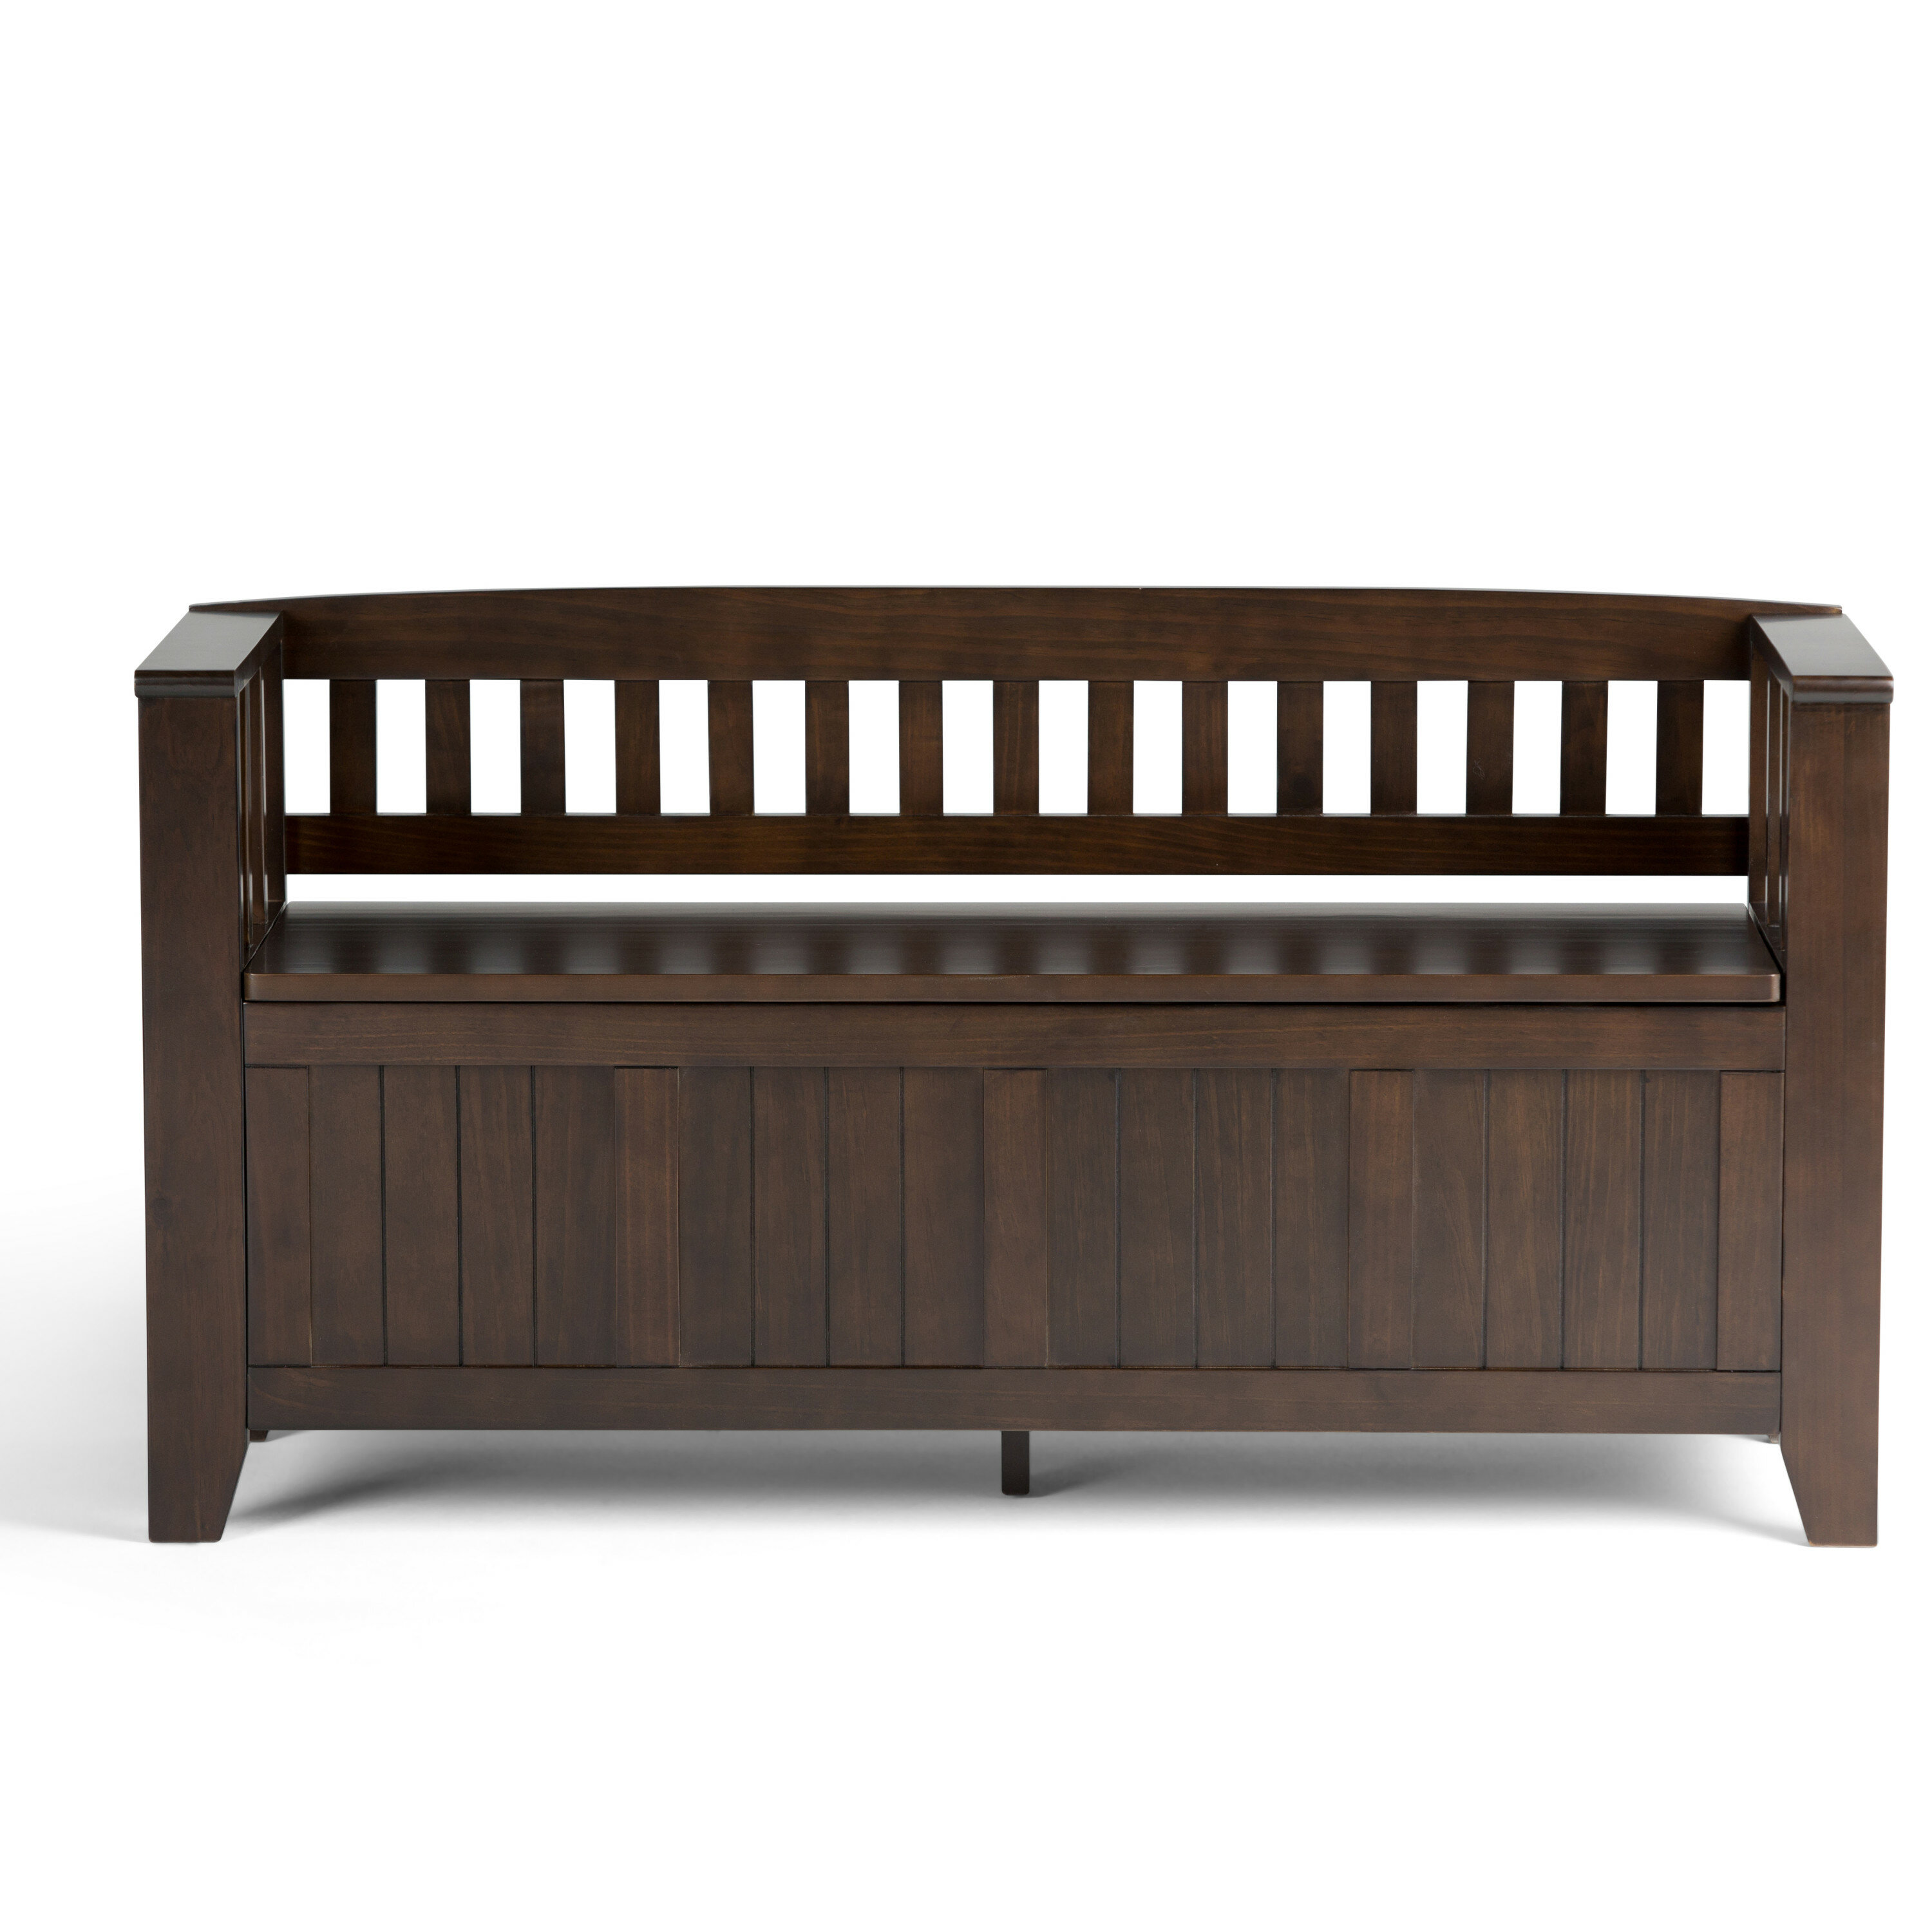 bench furniture file with co hickory black seat storage artisan tweed cabinet products upholstered shoe